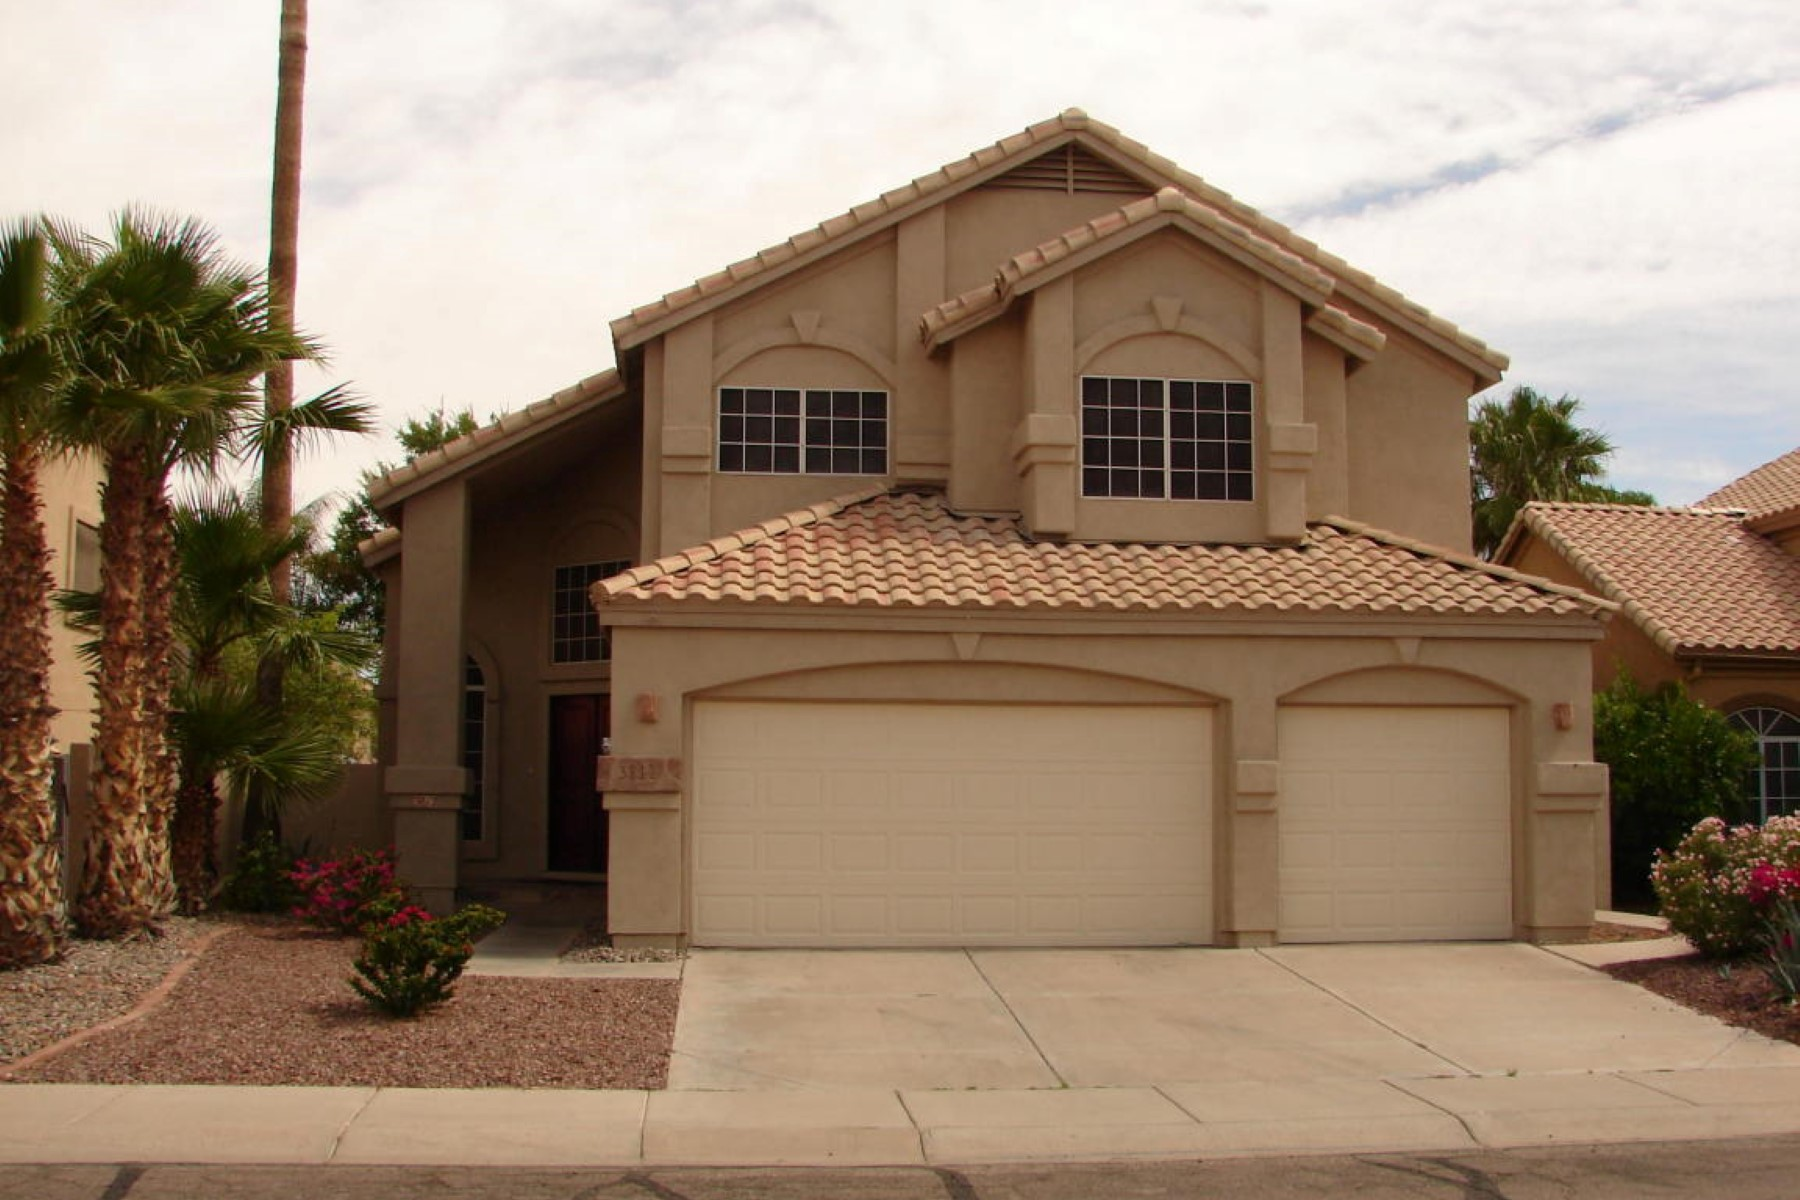 Single Family Home for Sale at Stunning Lakewood home on quiet street 3812 E BRIARWOOD TER Phoenix, Arizona 85048 United States